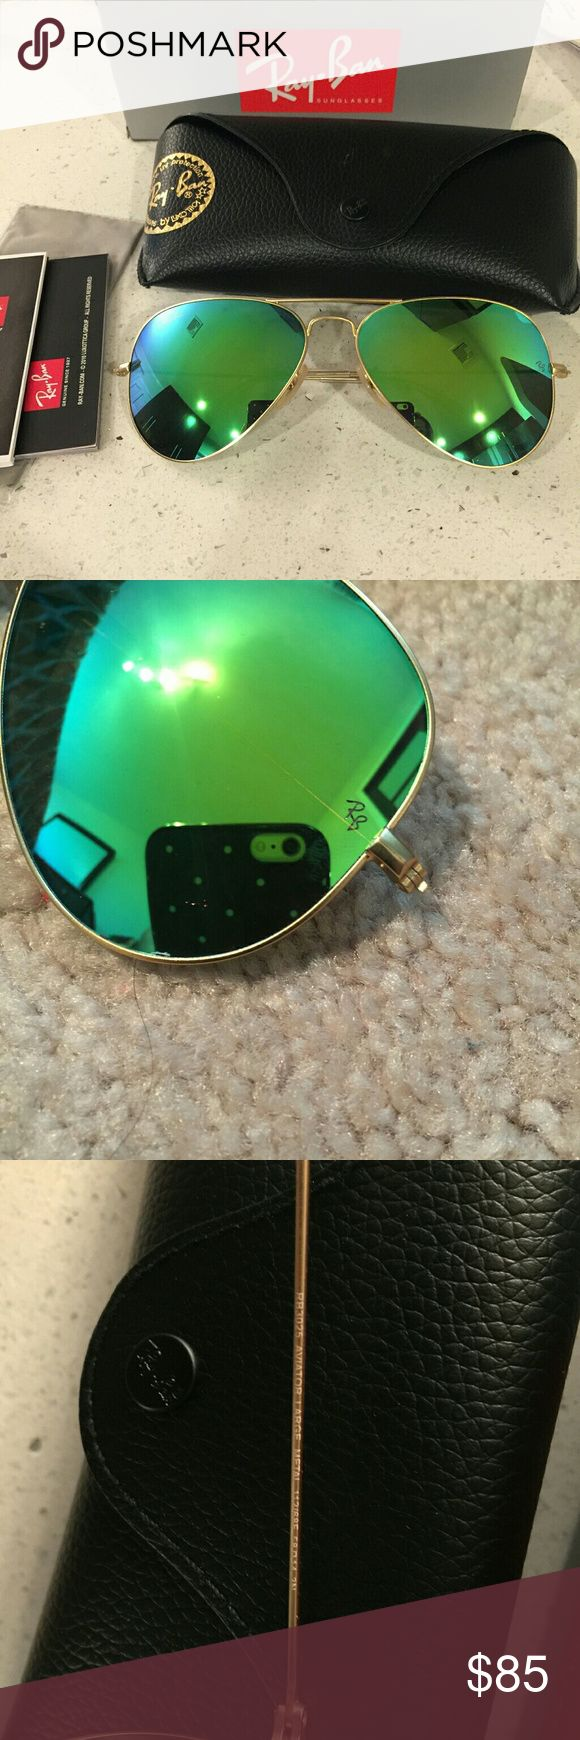 Ray Ban Aviator RB3025 in Green Flash ❤️️All my item are 100% Authentic.     Real ray ban                            ❤️Frame Color Gold.  Lens size 58MM                                                      🛇No Lowballing💕Feel free to ask any question💕 Ray-Ban Accessories Glasses